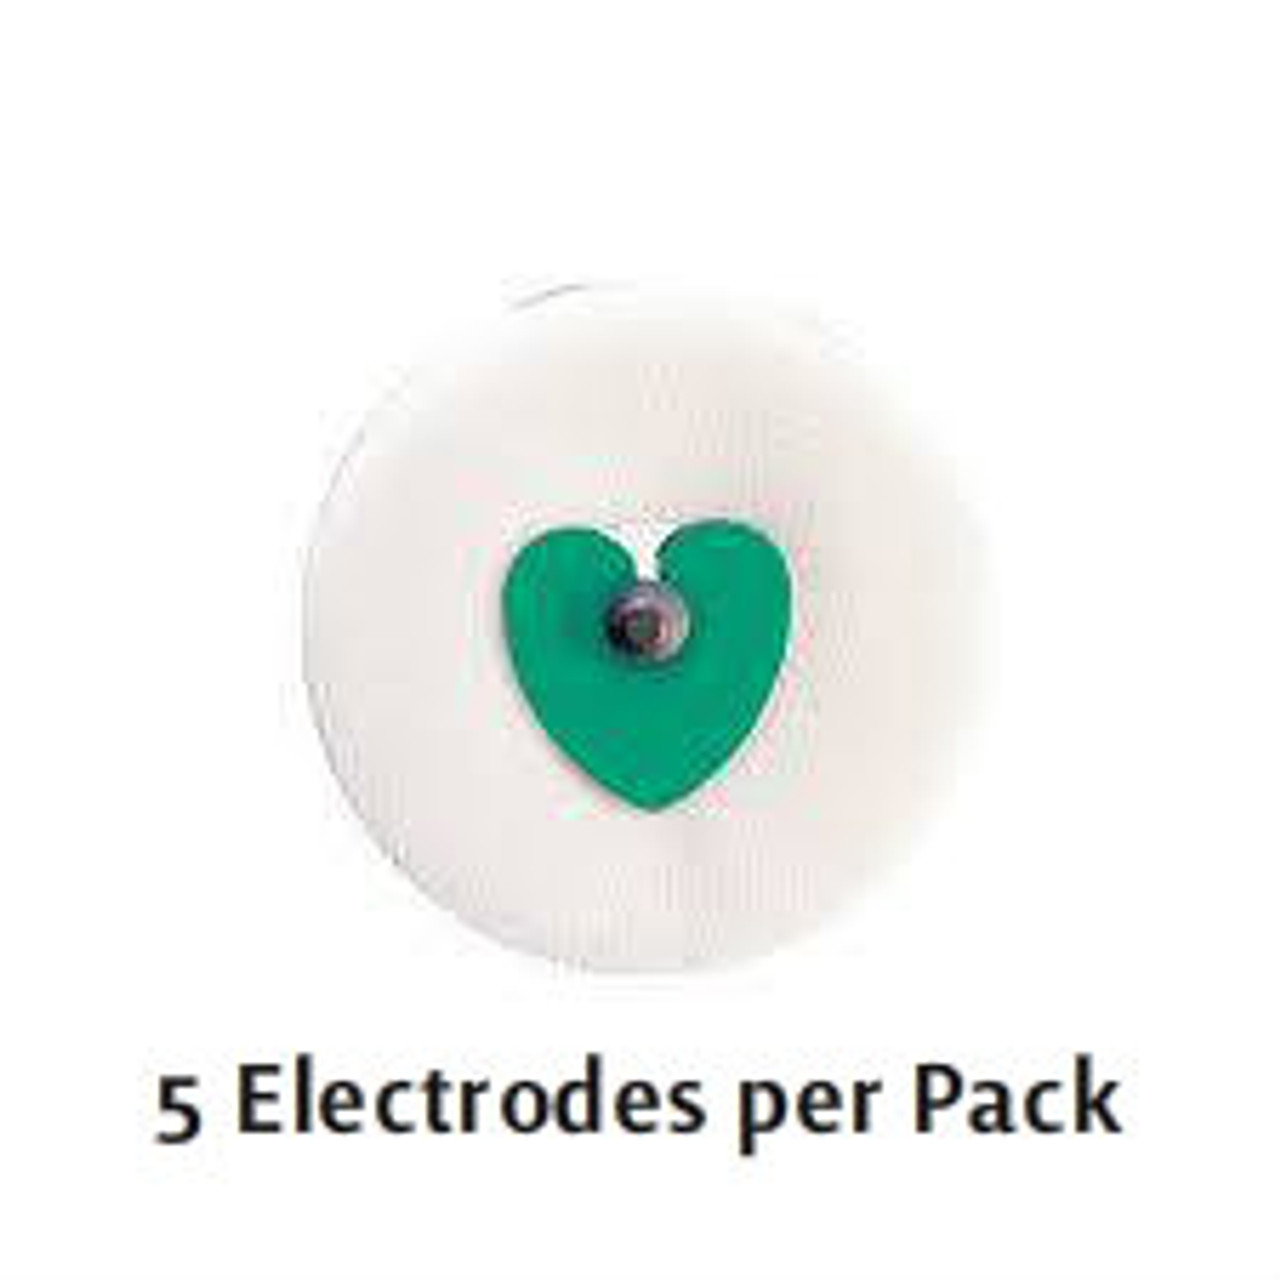 Mini Dyna-Trace Electrodes 5 per Pack